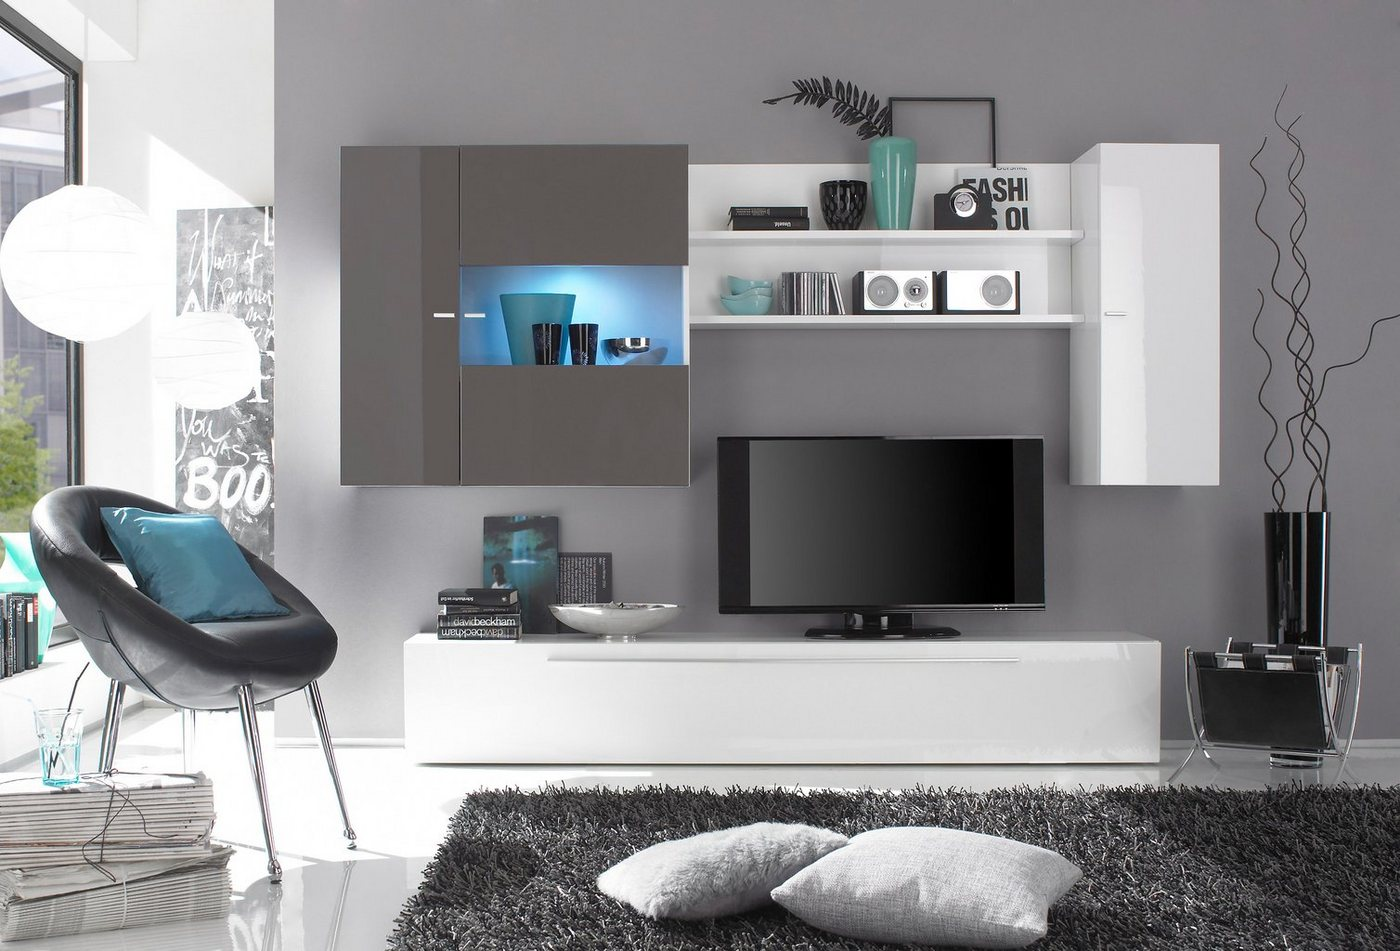 wandregal hochglanz weiss machen sie den preisvergleich. Black Bedroom Furniture Sets. Home Design Ideas